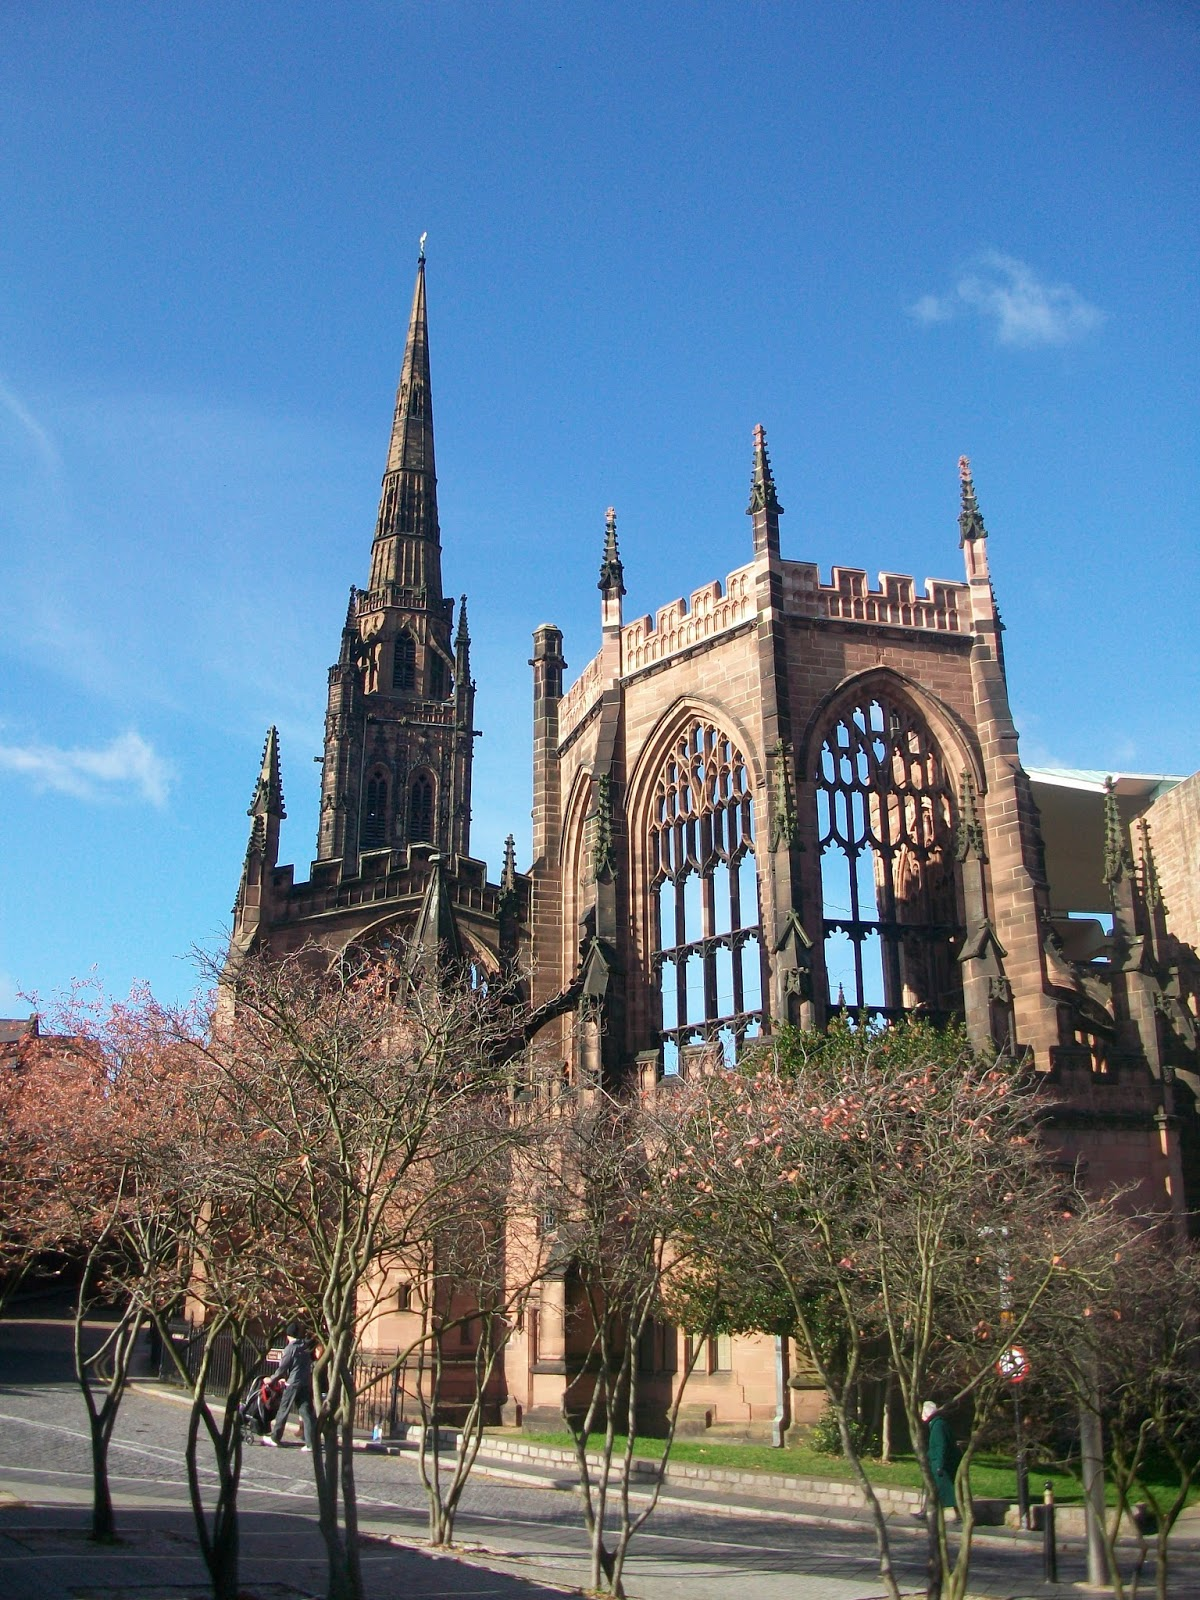 a6434a49 A quick calculation tells me that 7 years ago, I moved to Coventry for  university. I don't know where that time has gone. All I know is that those 3  years I ...